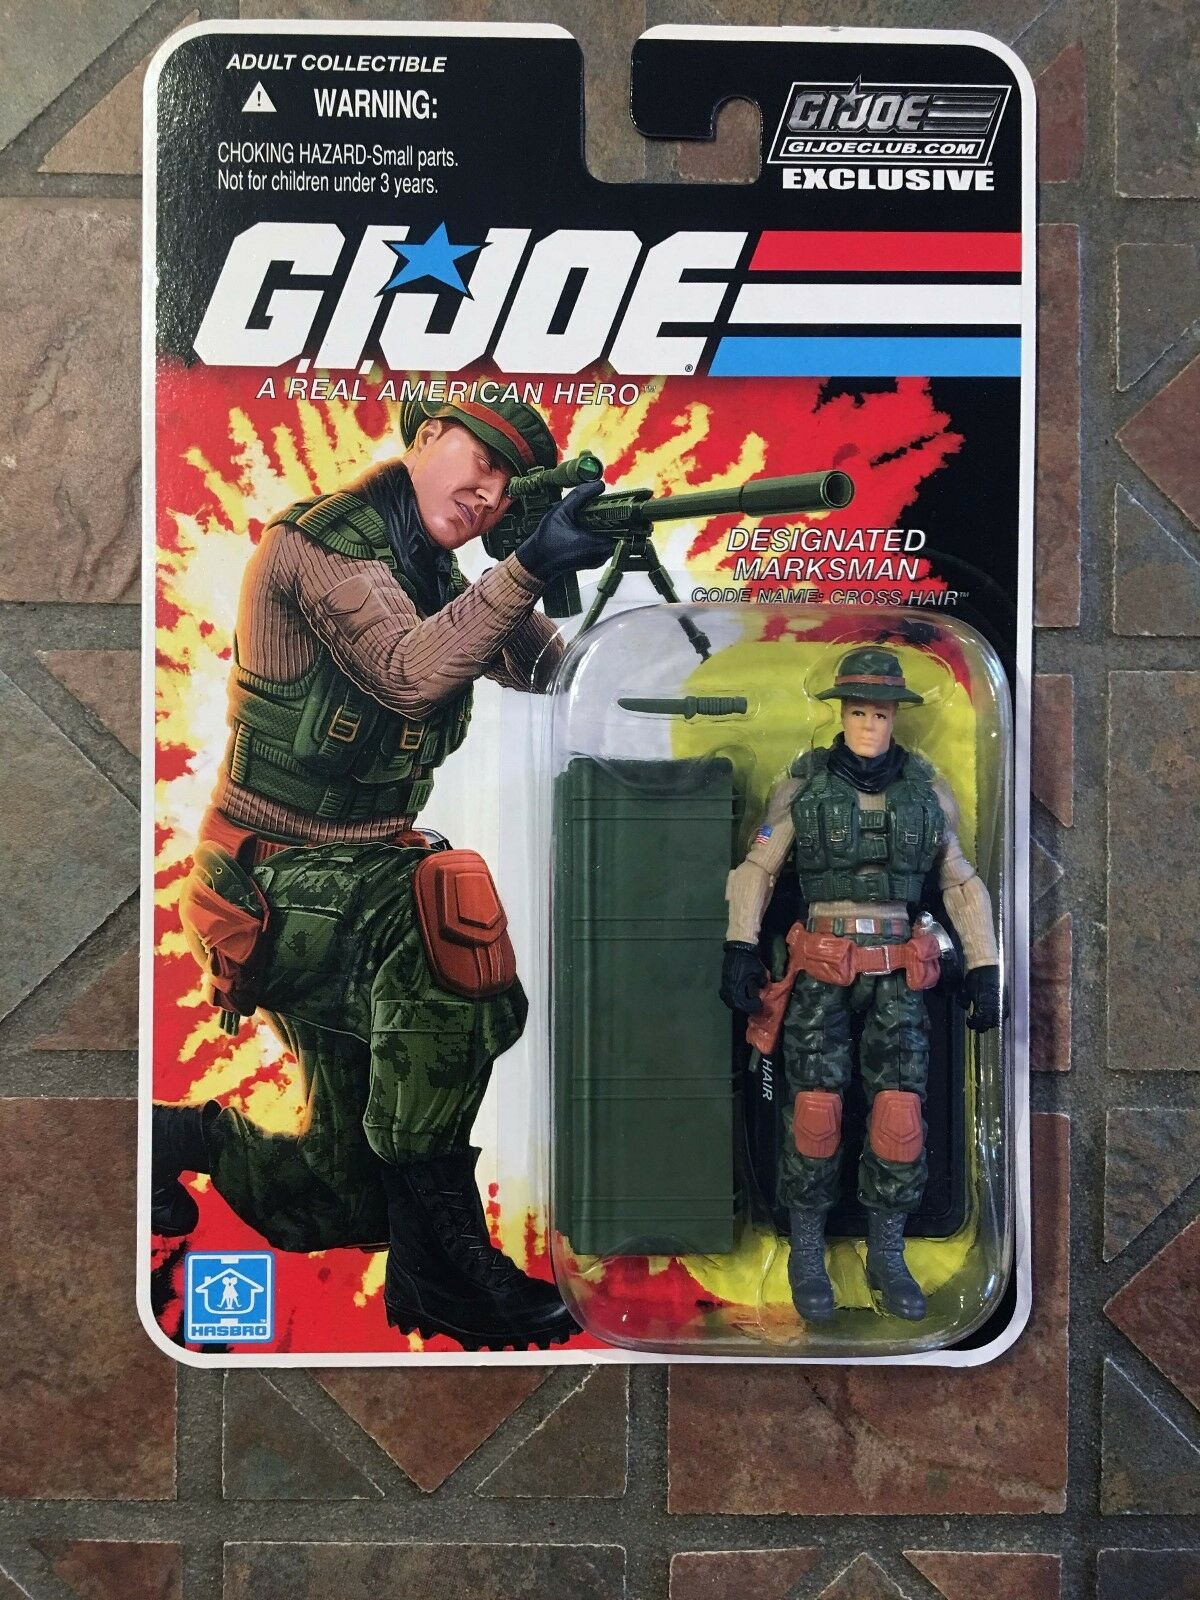 Gi Joe Fss Crosshair 6.0 2018 Collectors Club Exclusiv Figur Cobra 30. 50th